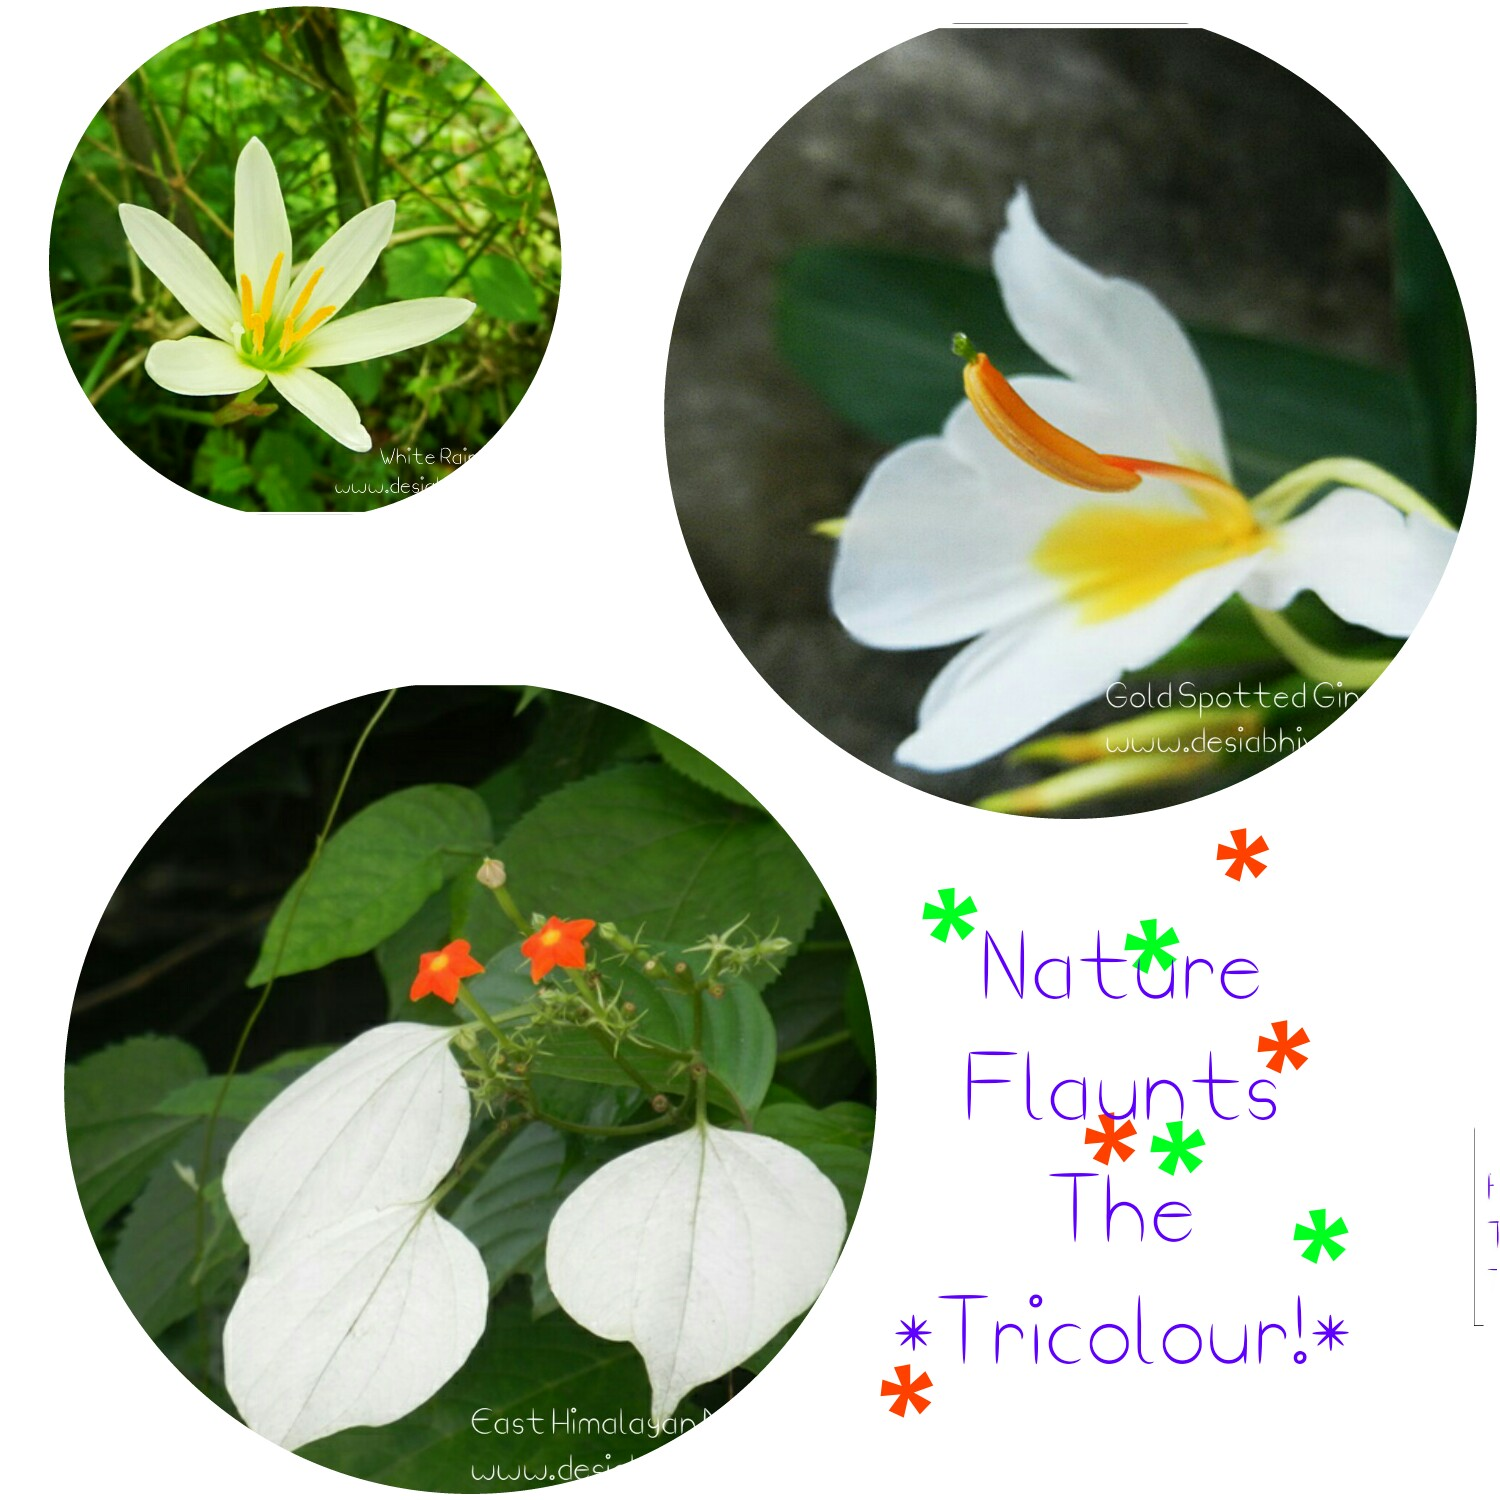 Nature Flaunts The Tricolour - East Himalayan Mussaenda, Gold Spot Ginger Lily and White Rain Lily